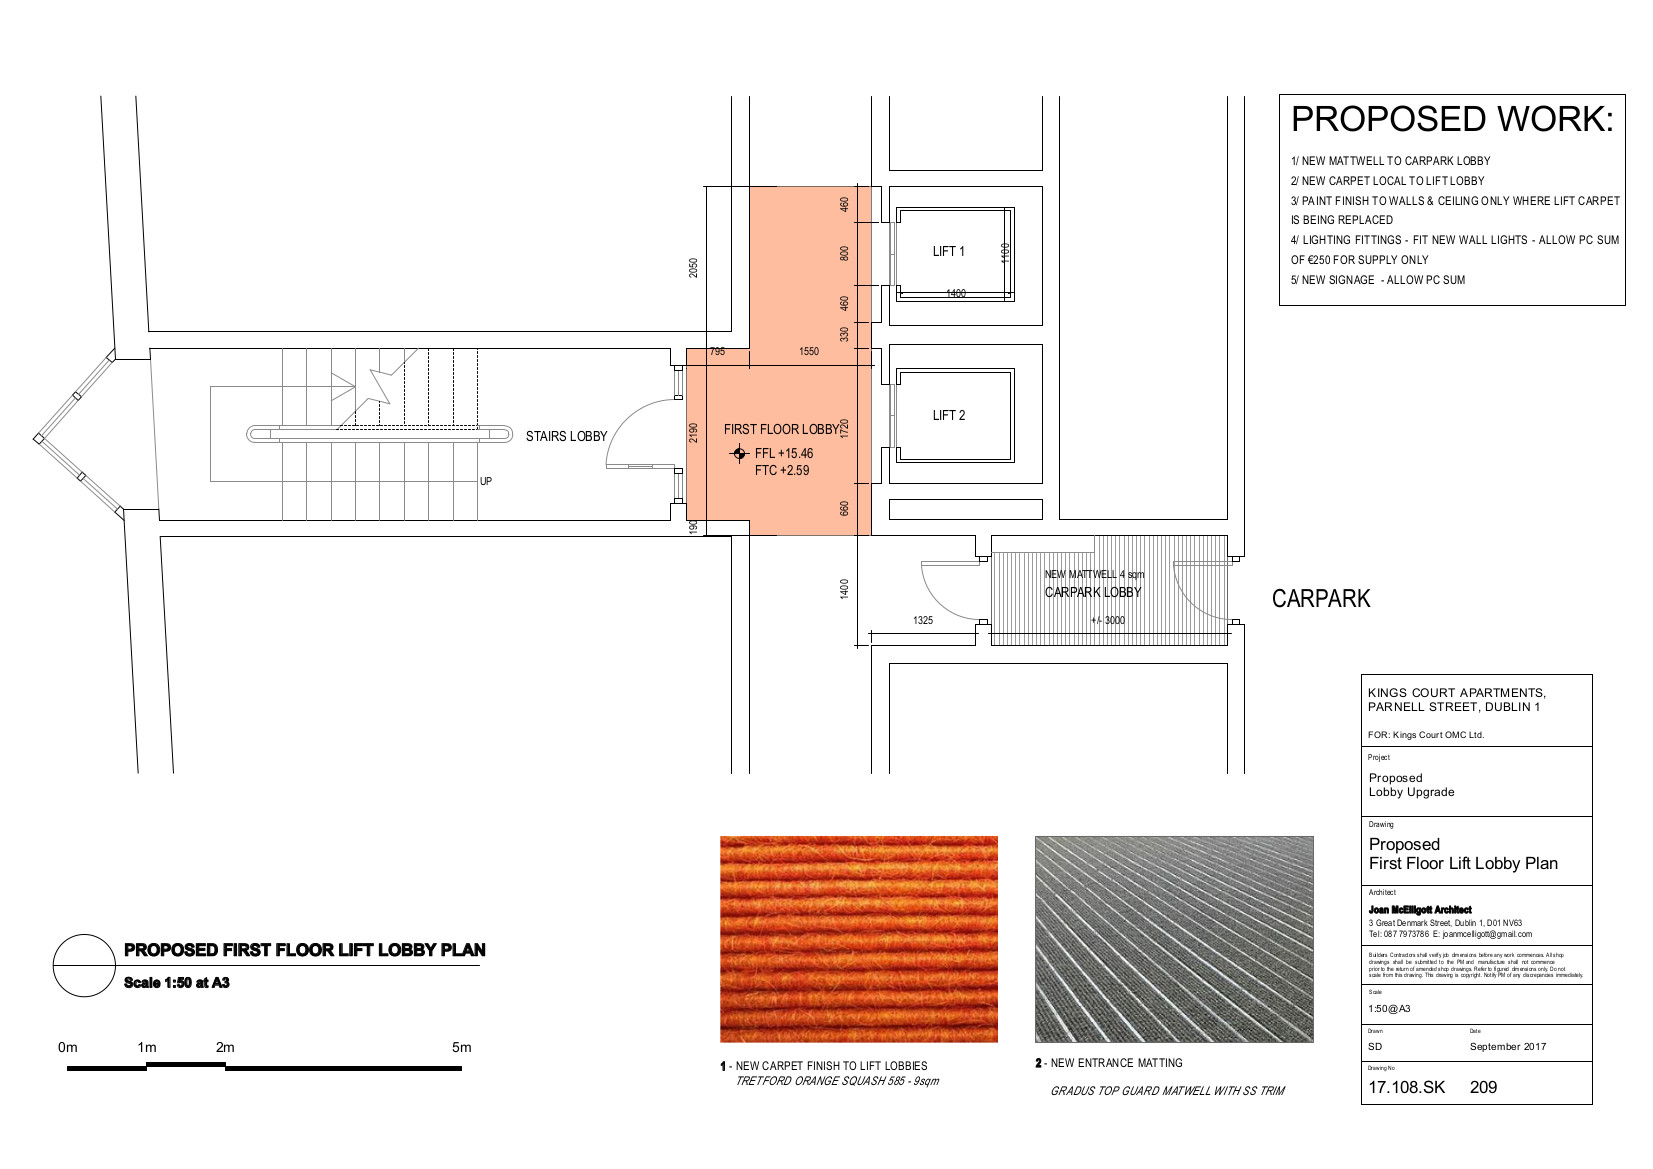 17:109_Proposed Lobby Plan.jpg